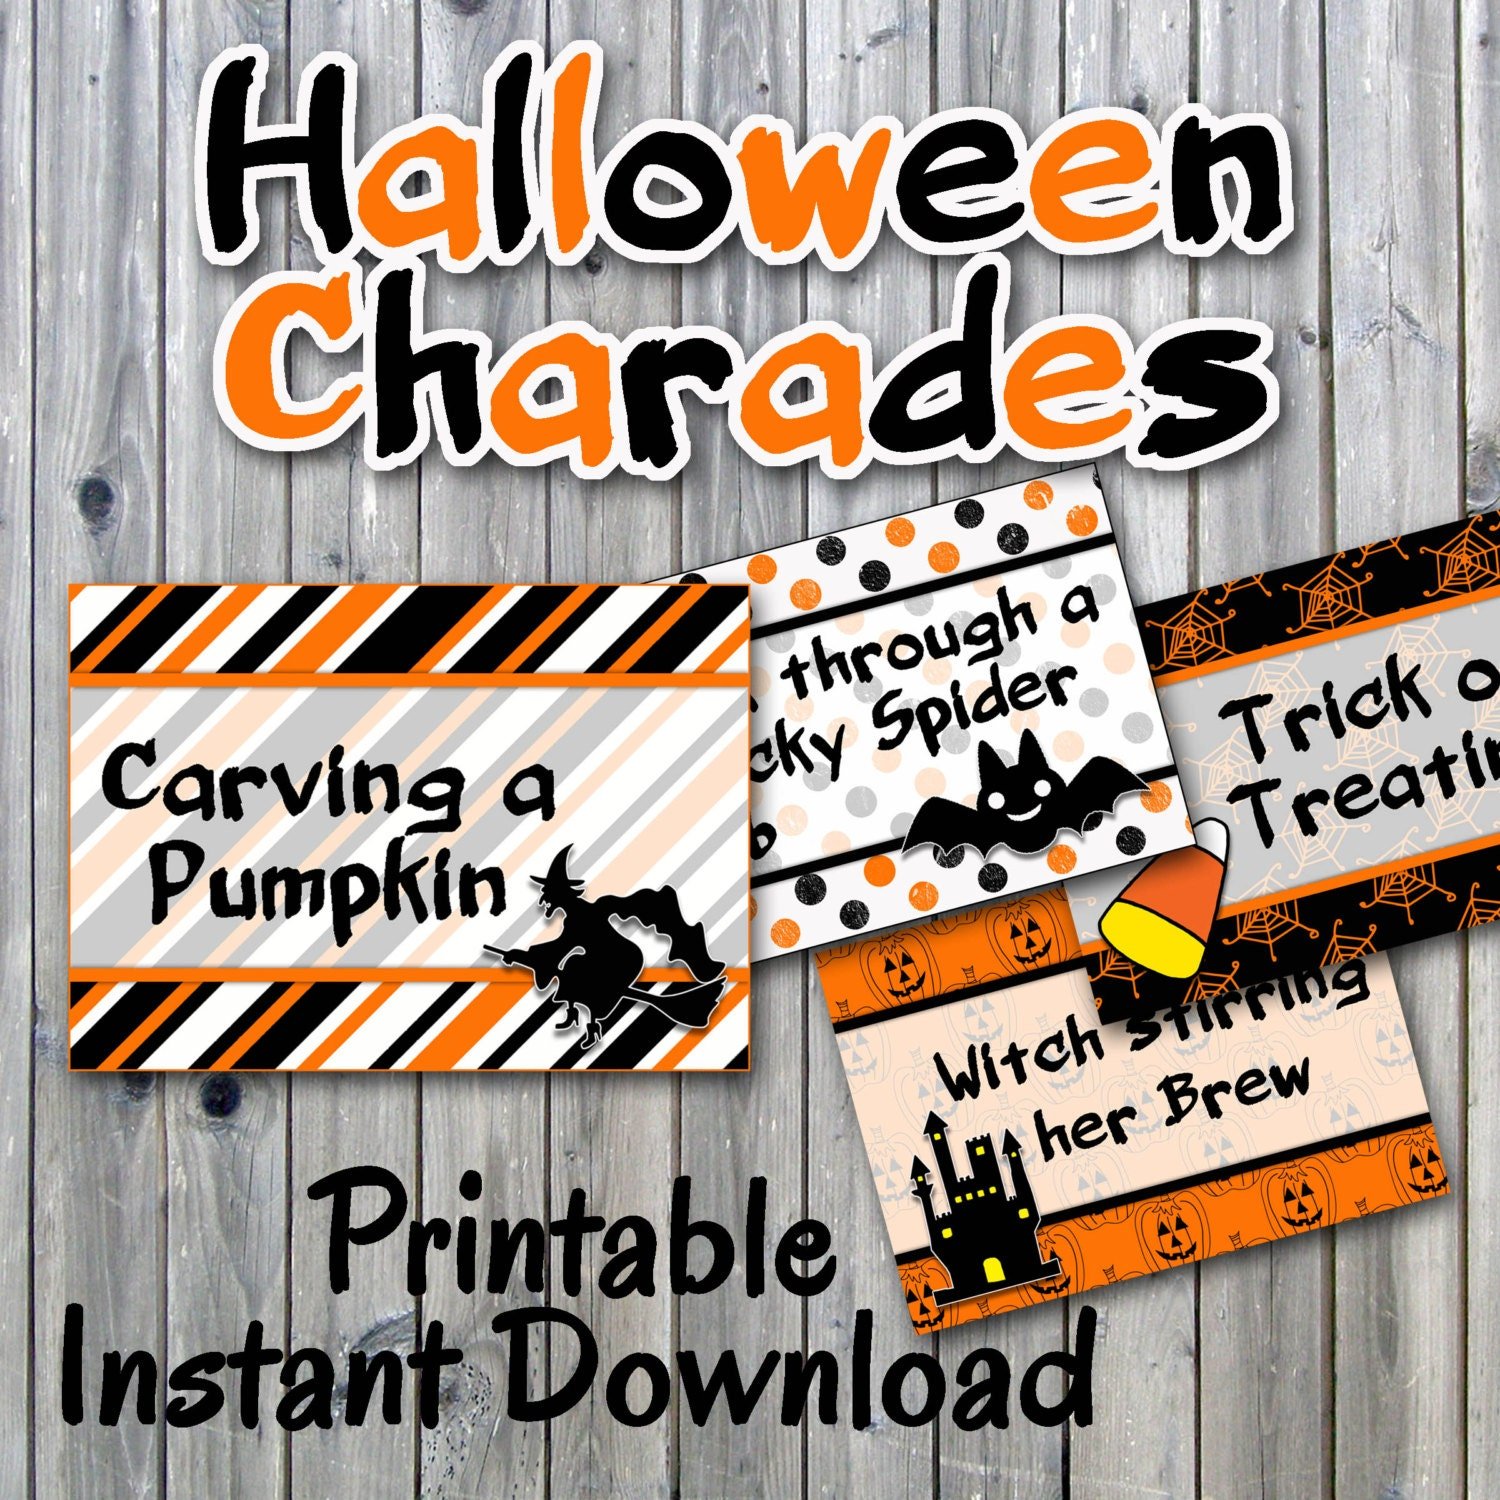 halloween charades party game printable 32 different charade | etsy